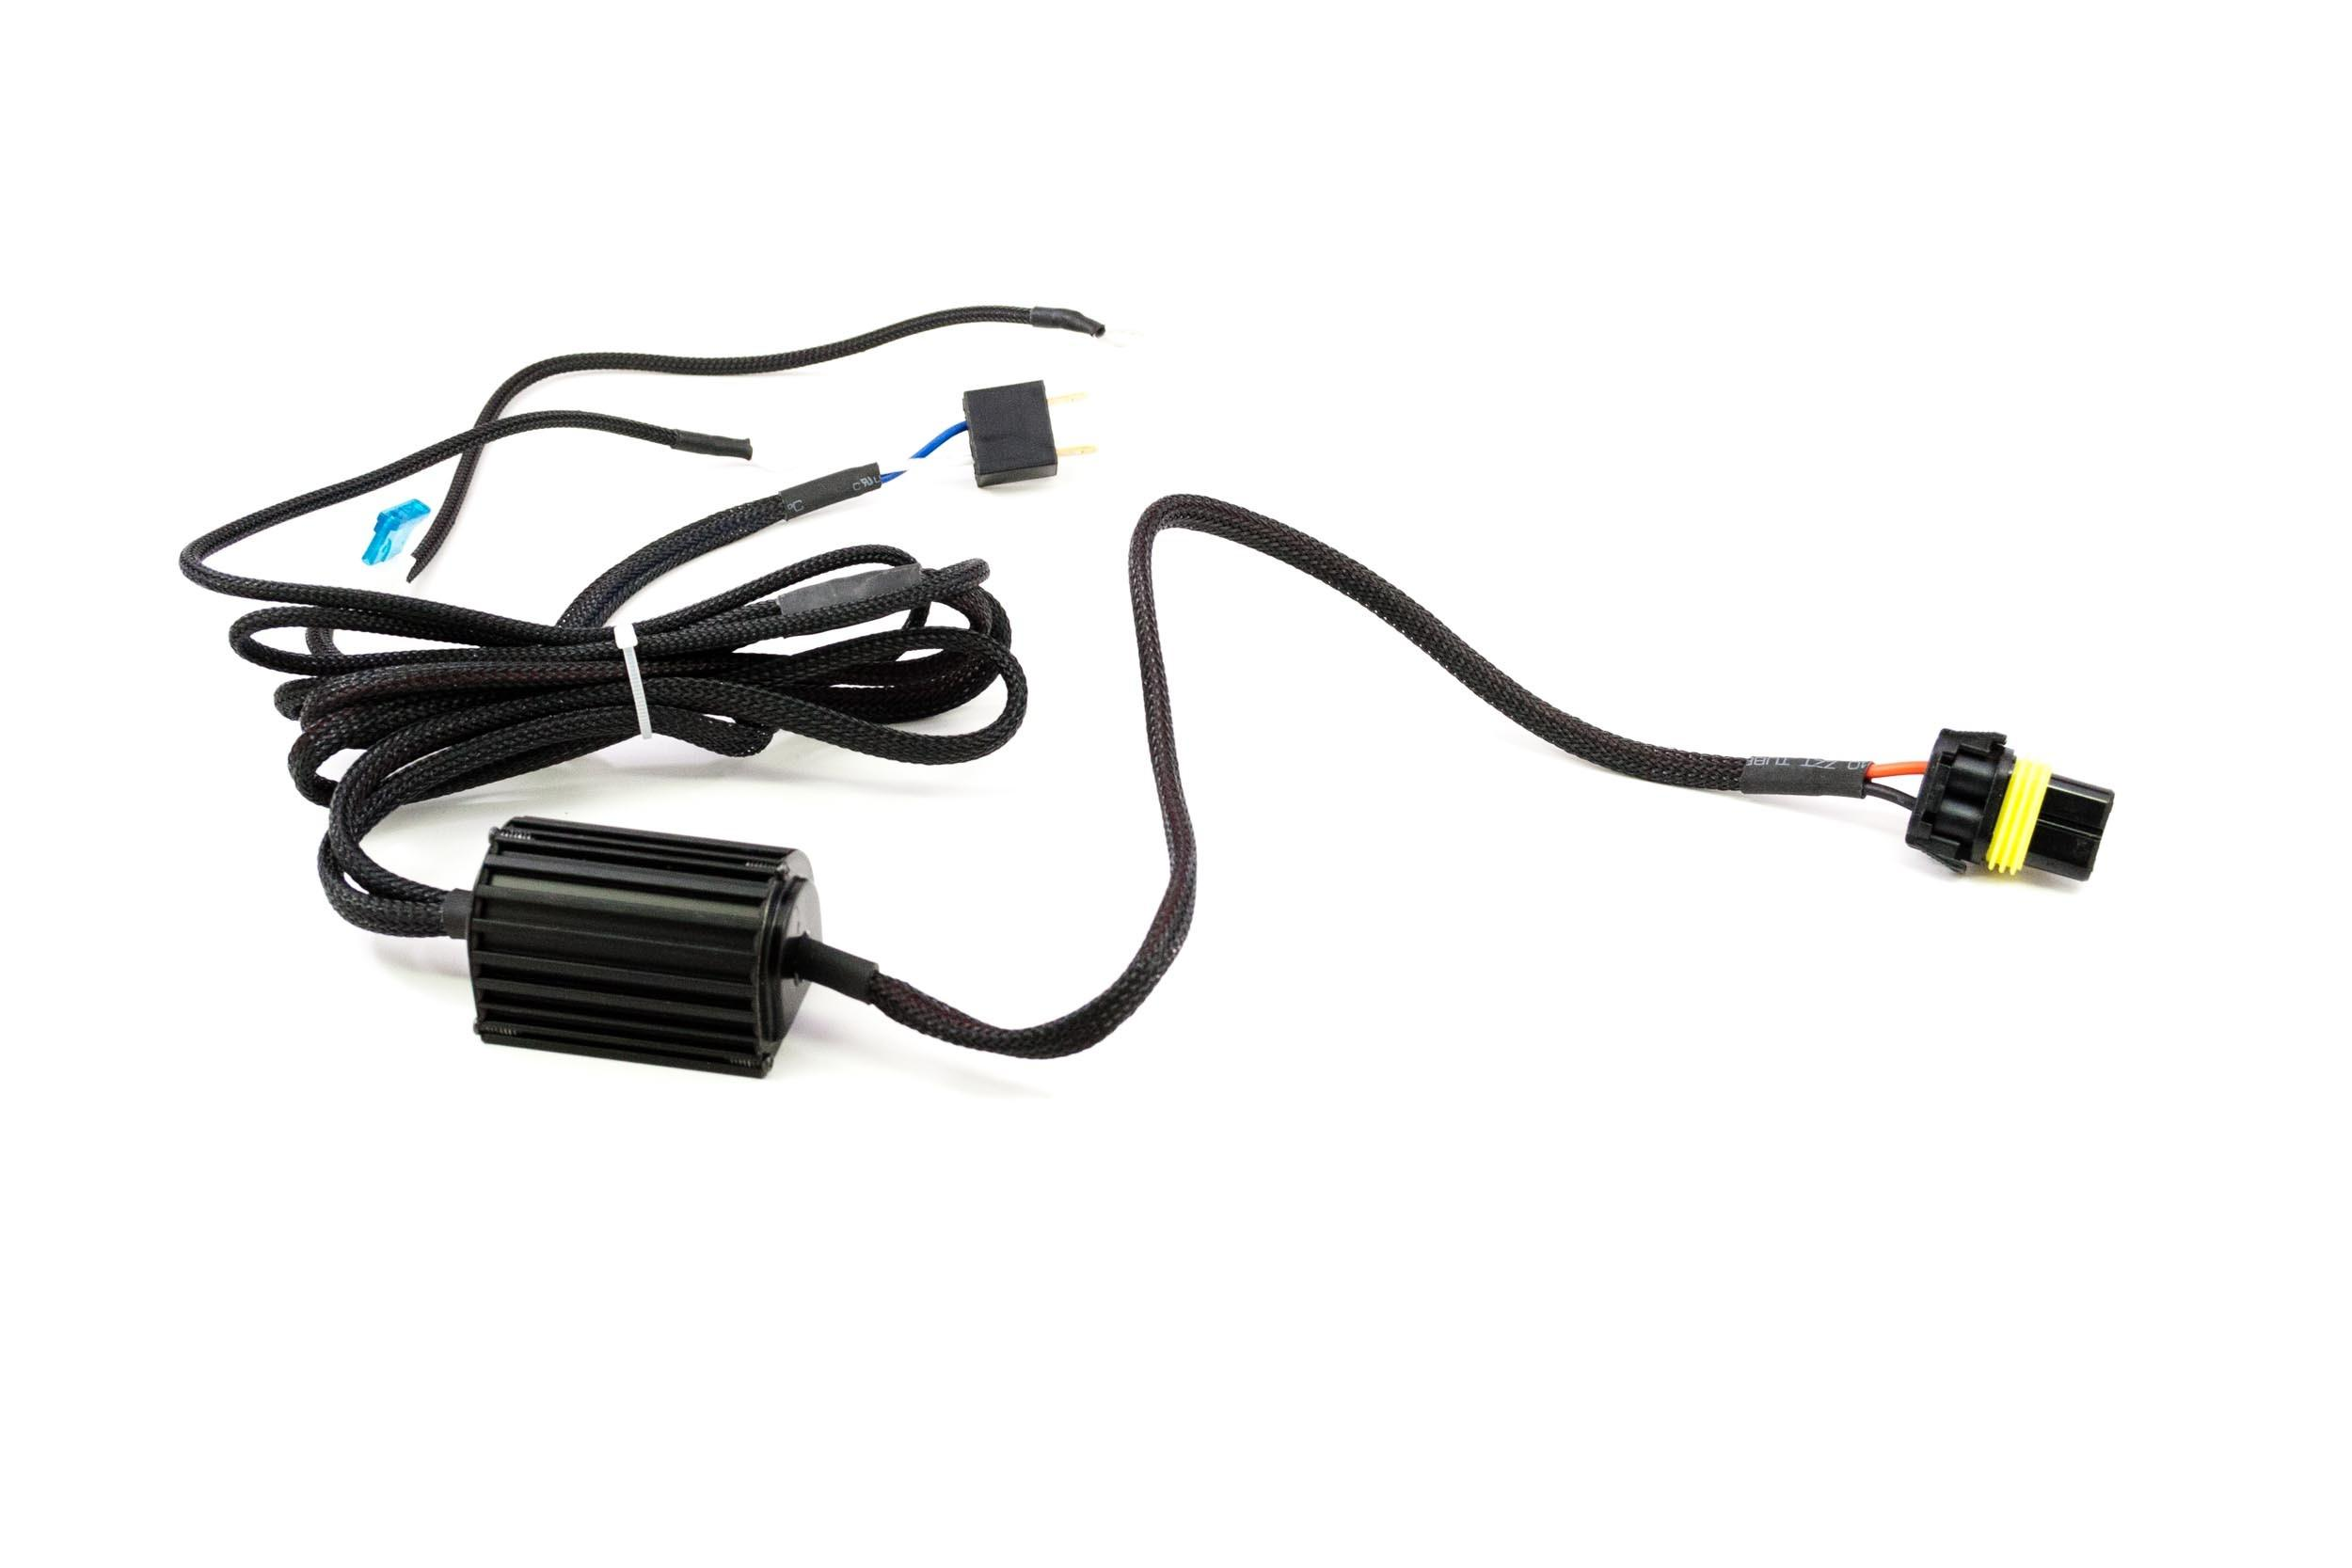 H7 Headlight Wire Harness